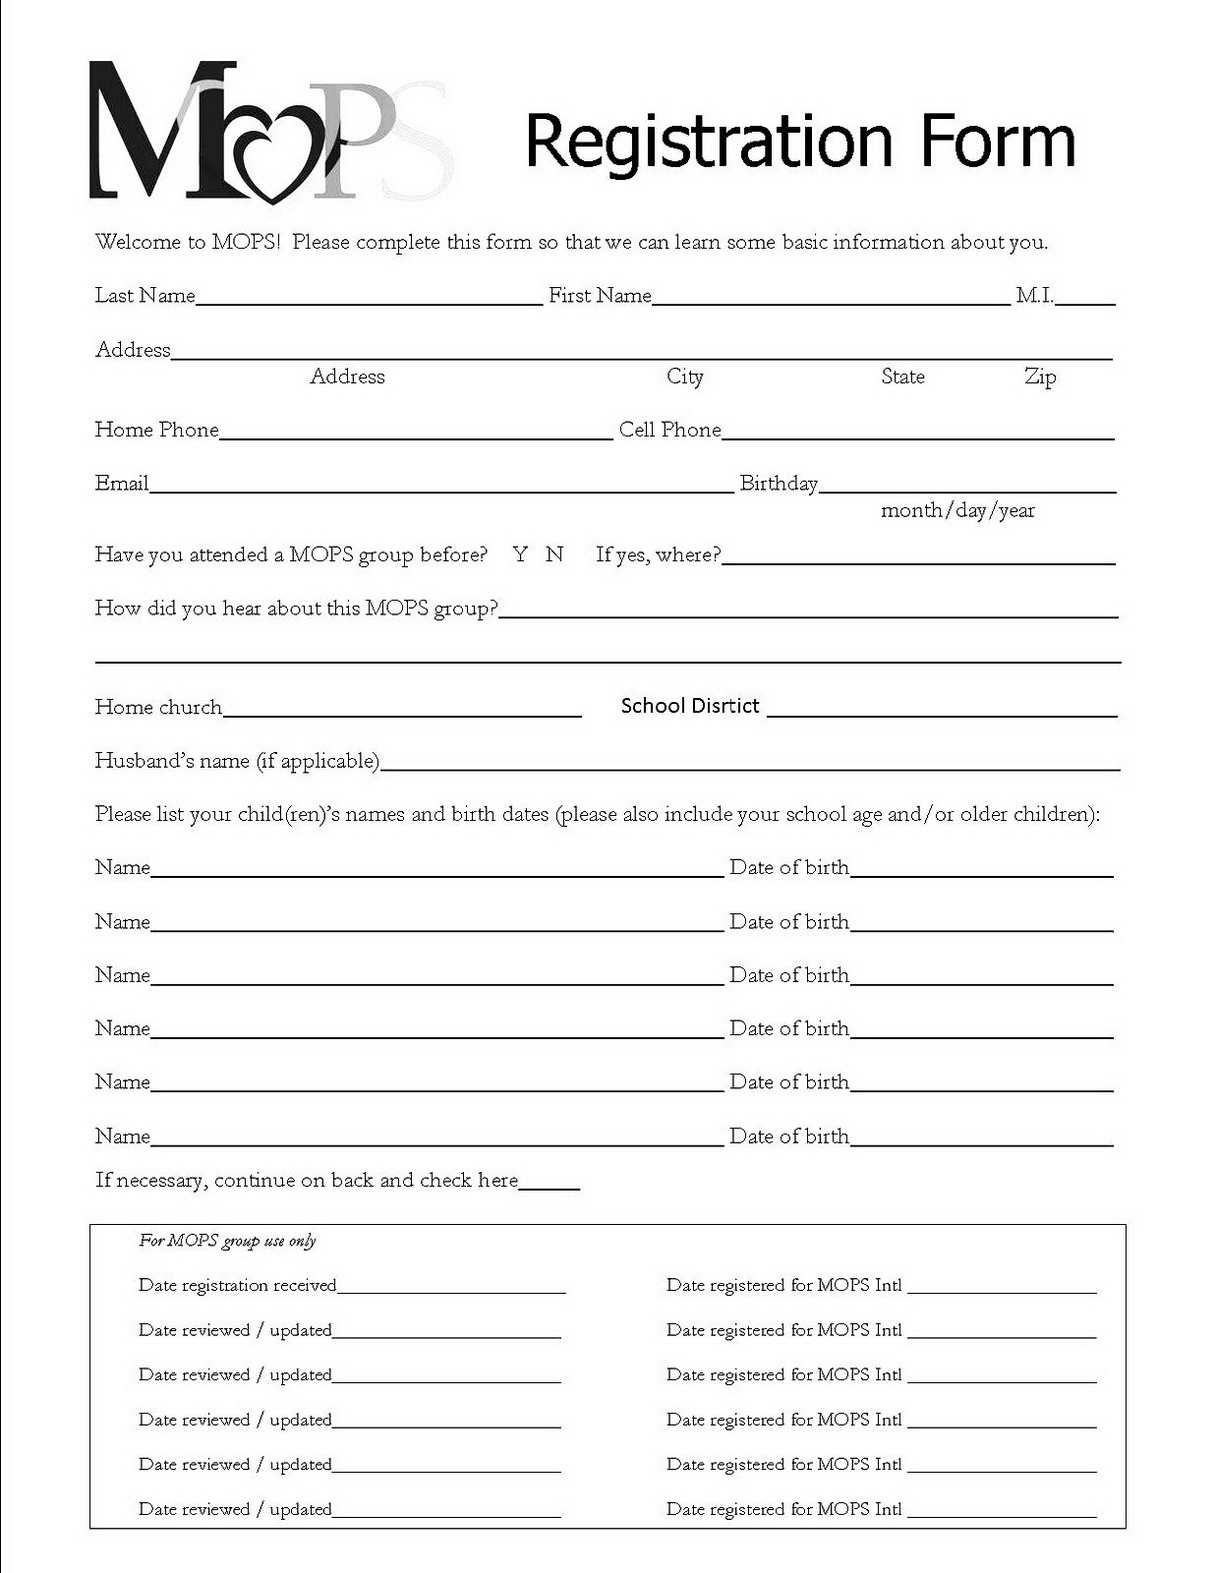 Registration Form Templates Free Download - Demir.iso-Consulting.co - Free Printable Membership Forms